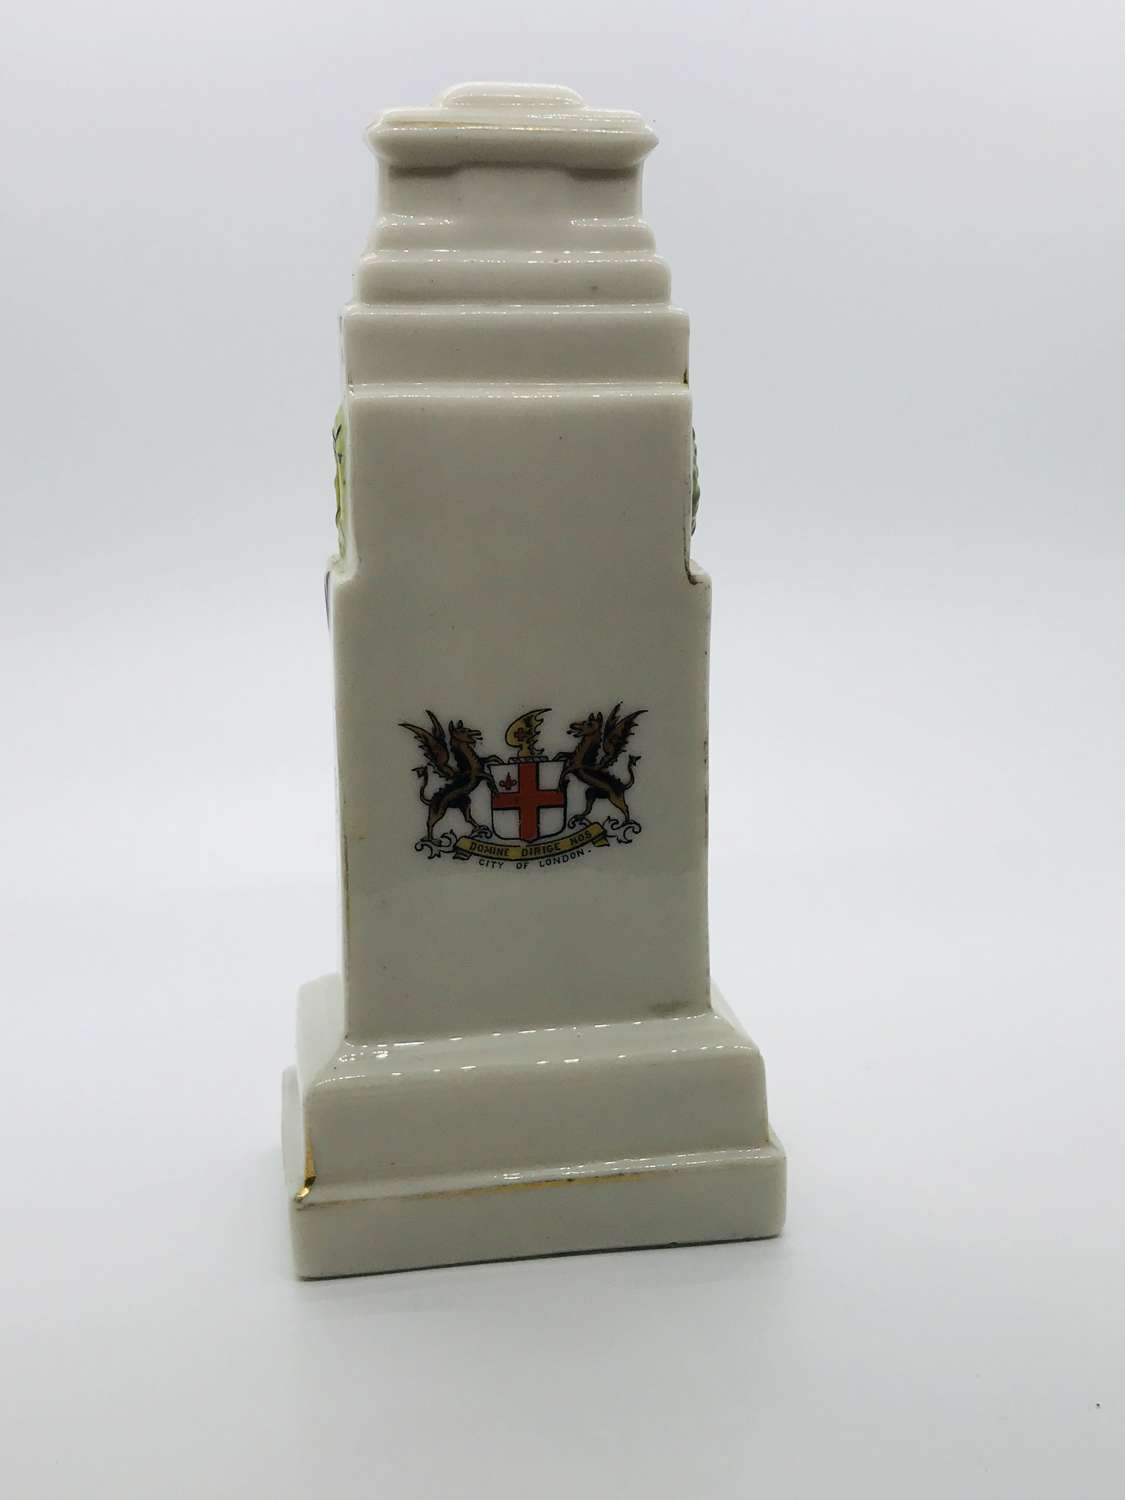 A China model of the cenotaph